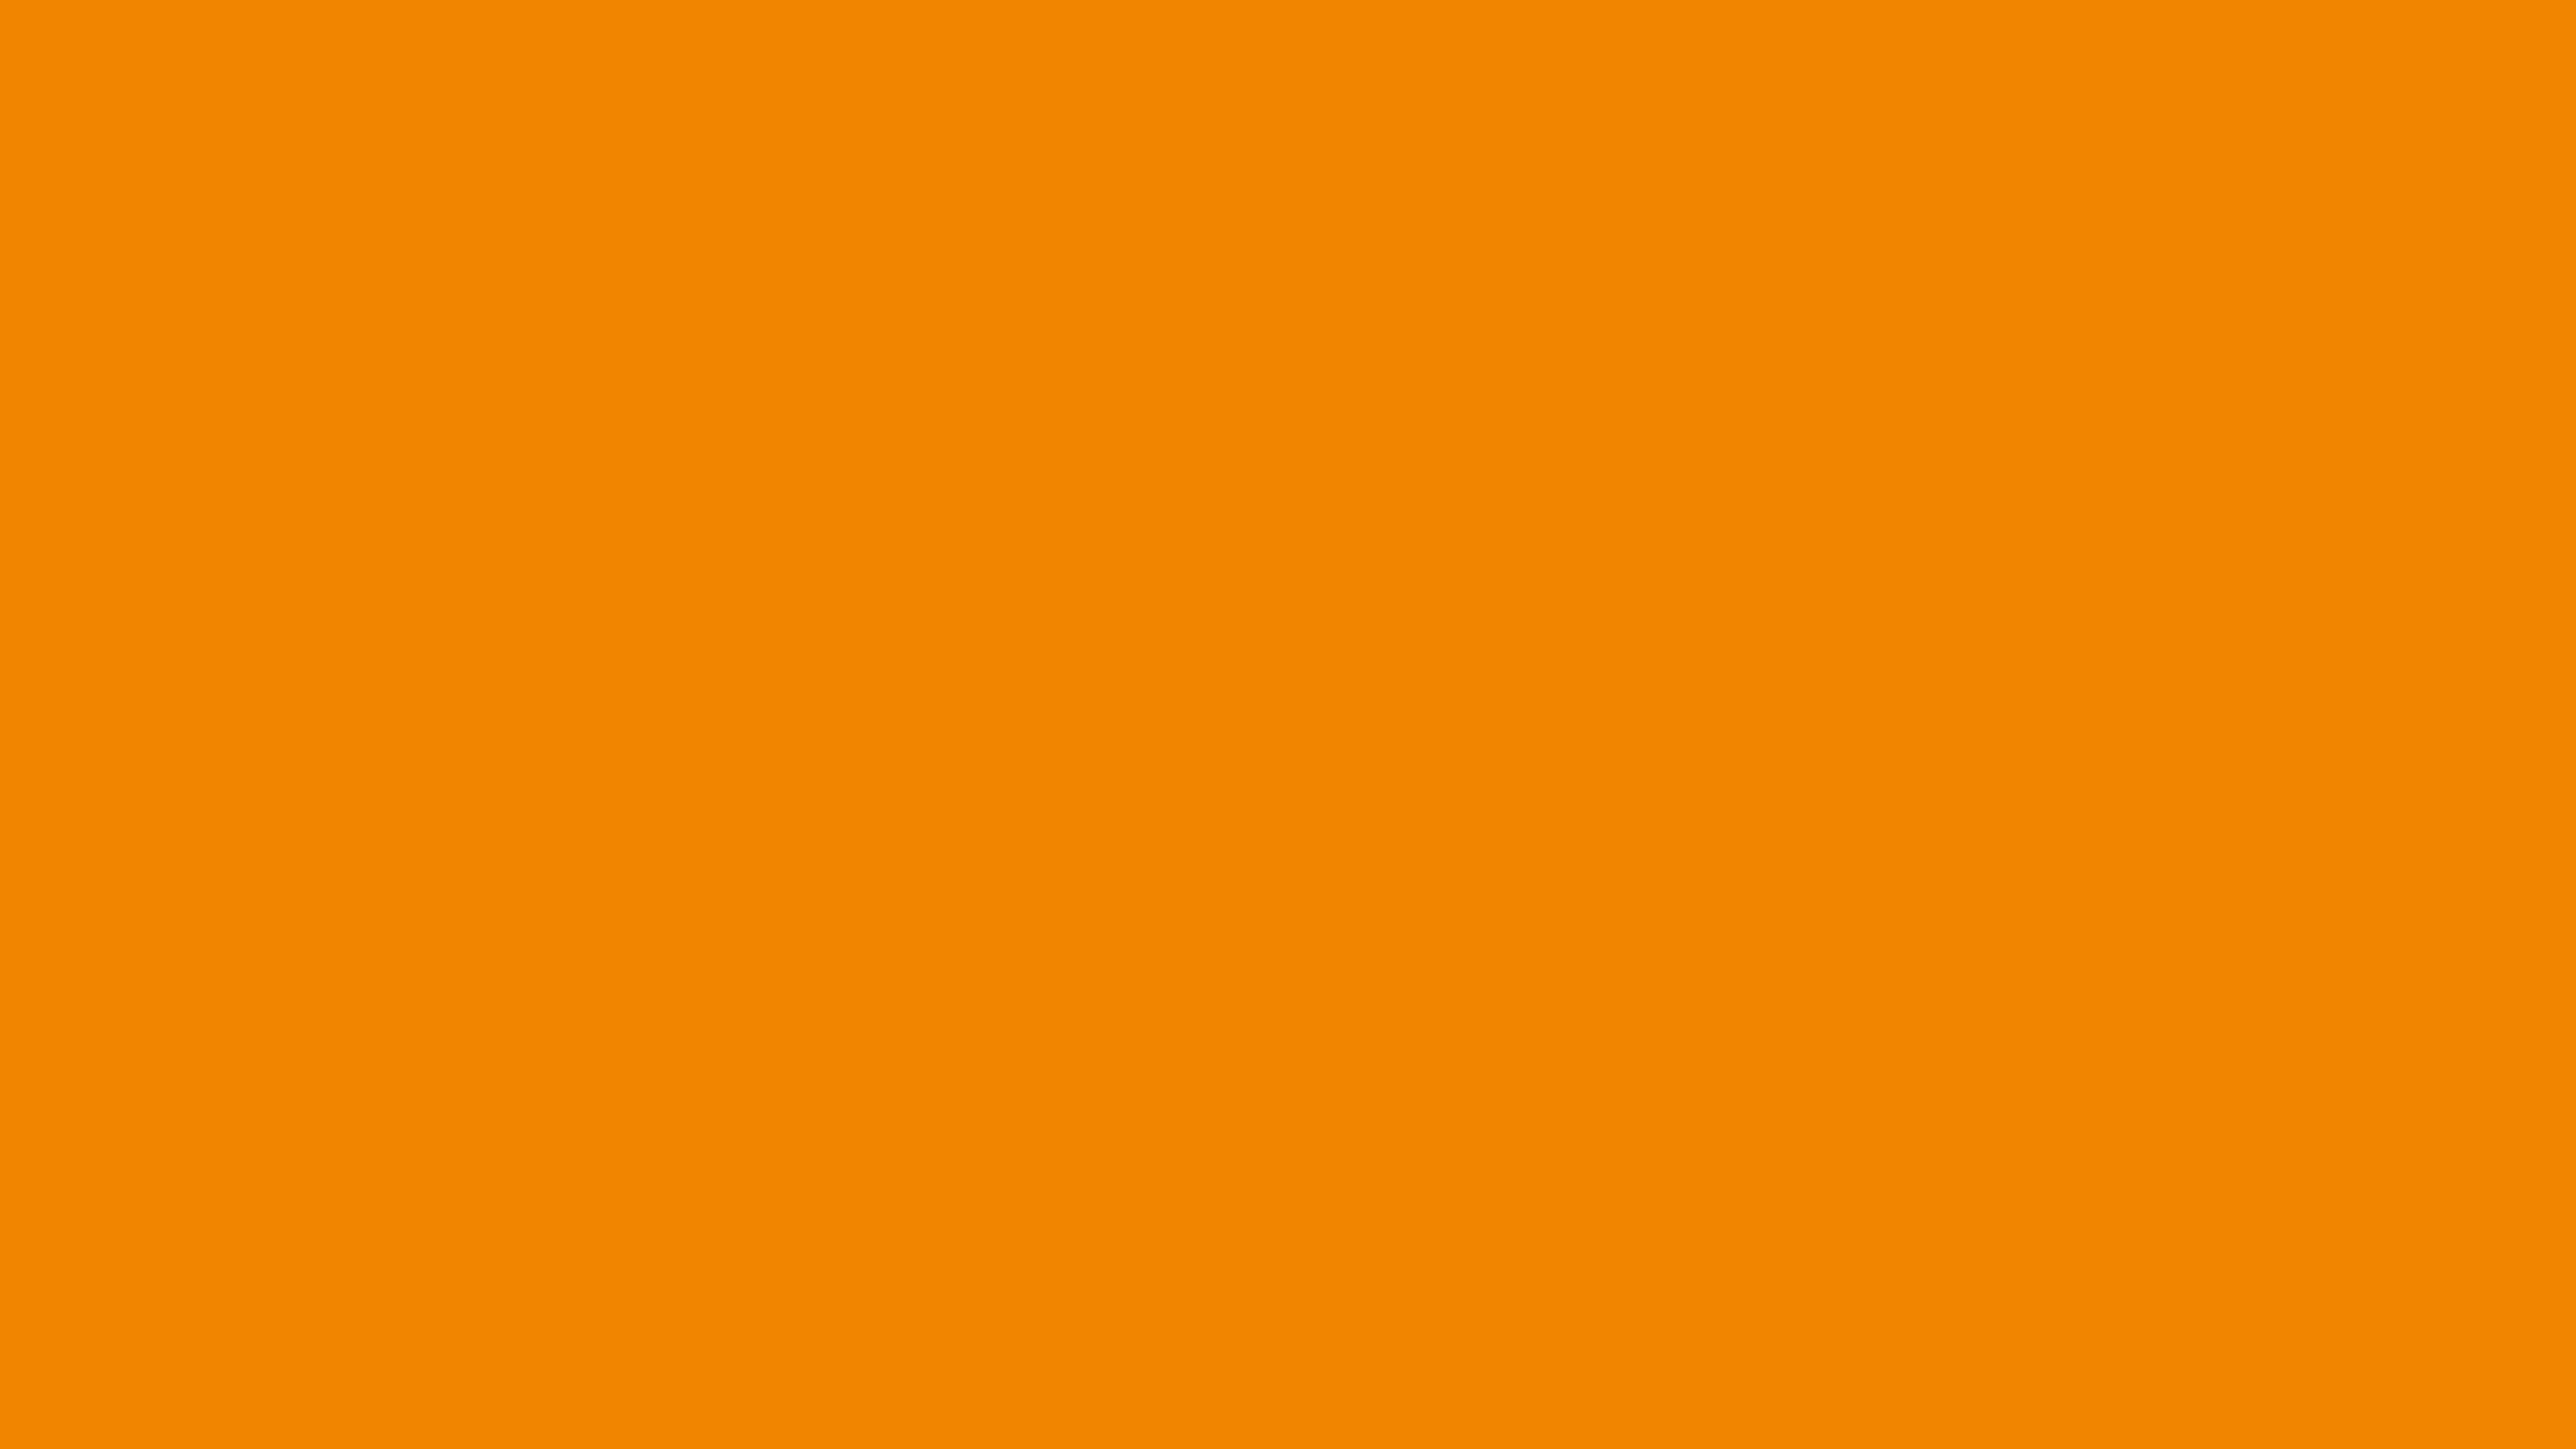 3840x2160 Tangerine Solid Color Background